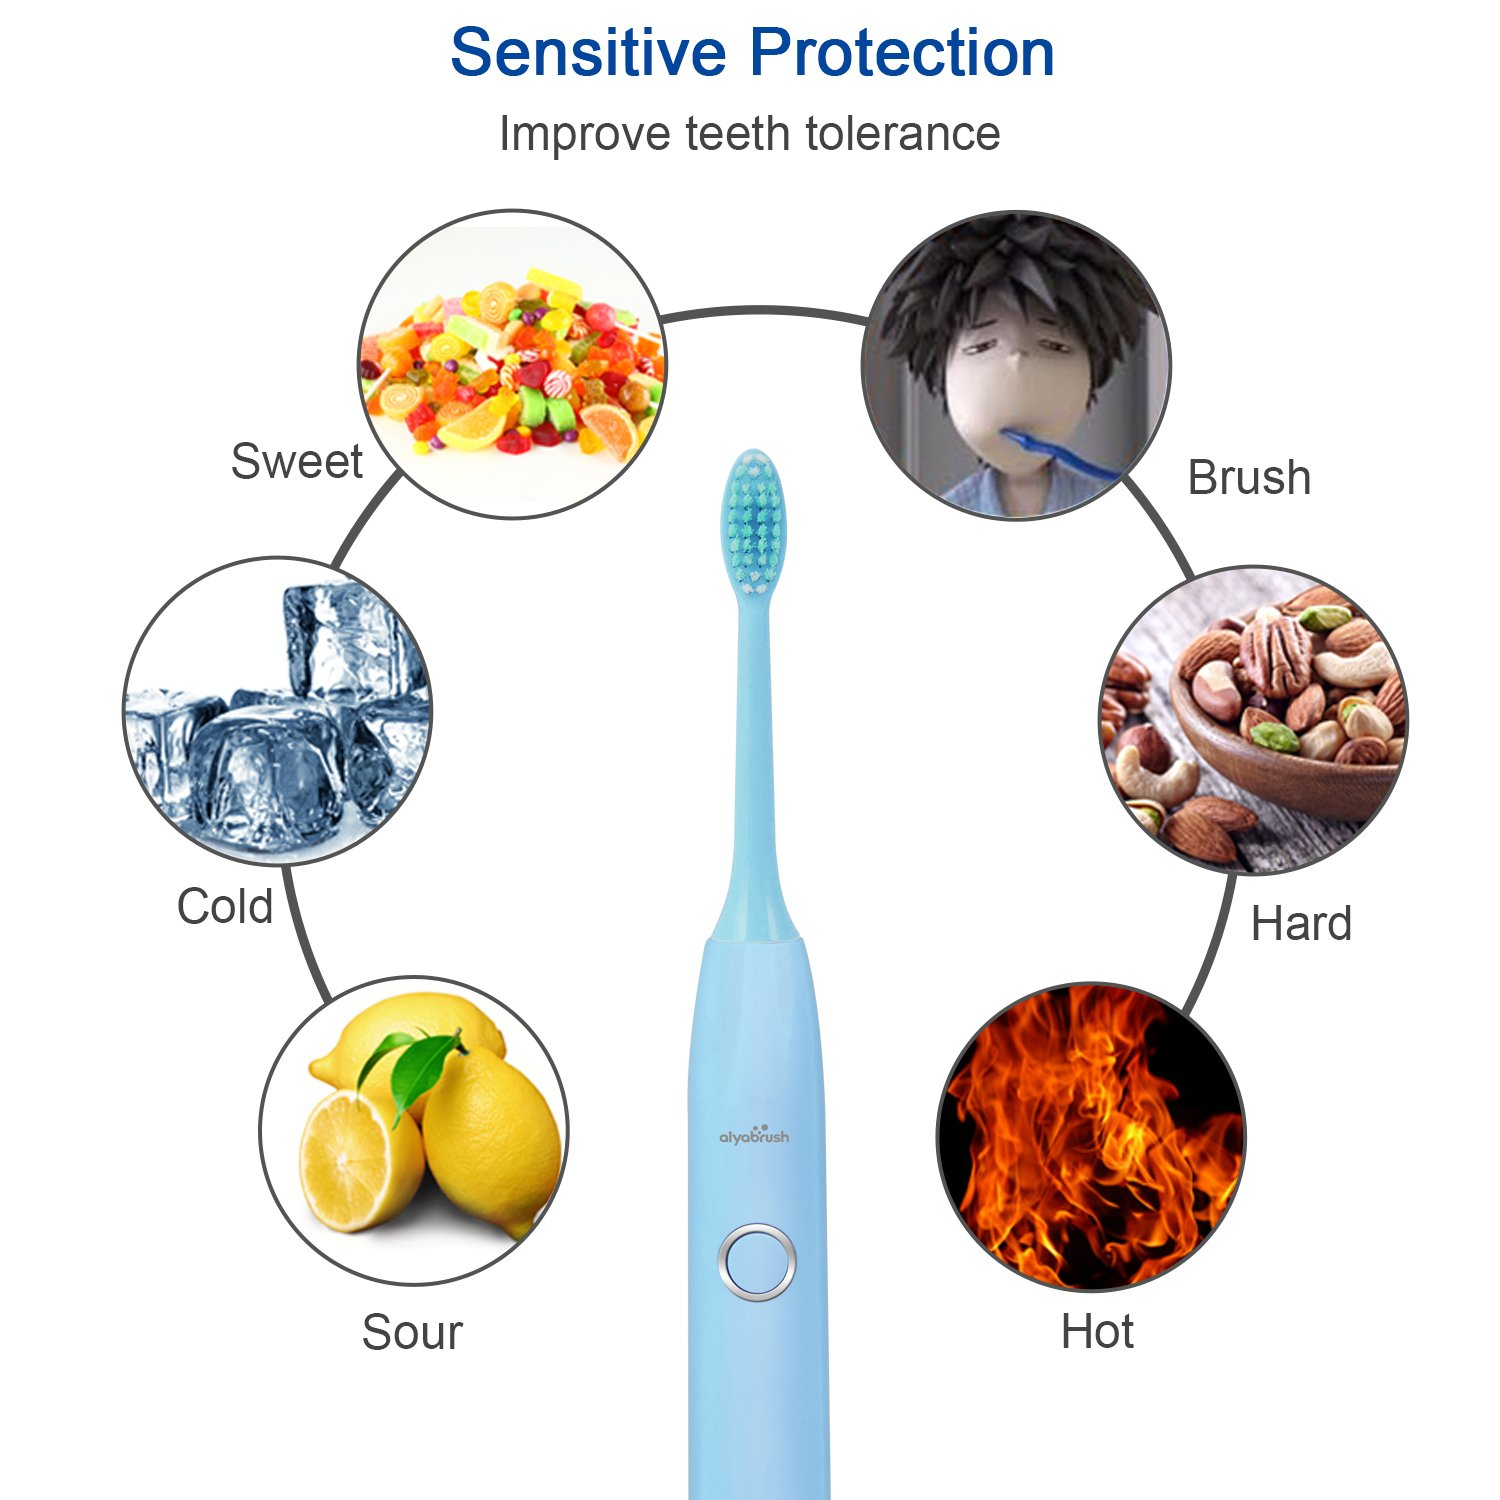 Sonic Electric Toothbrush for Kids 3-12 Years Aiyabrush 30s brushing reminder Rechargeable Toothbrushes with 2000mAh capacity battery 100 Days Use on One Charge waterproof IPX7 (Blue) by aiyabrush (Image #2)